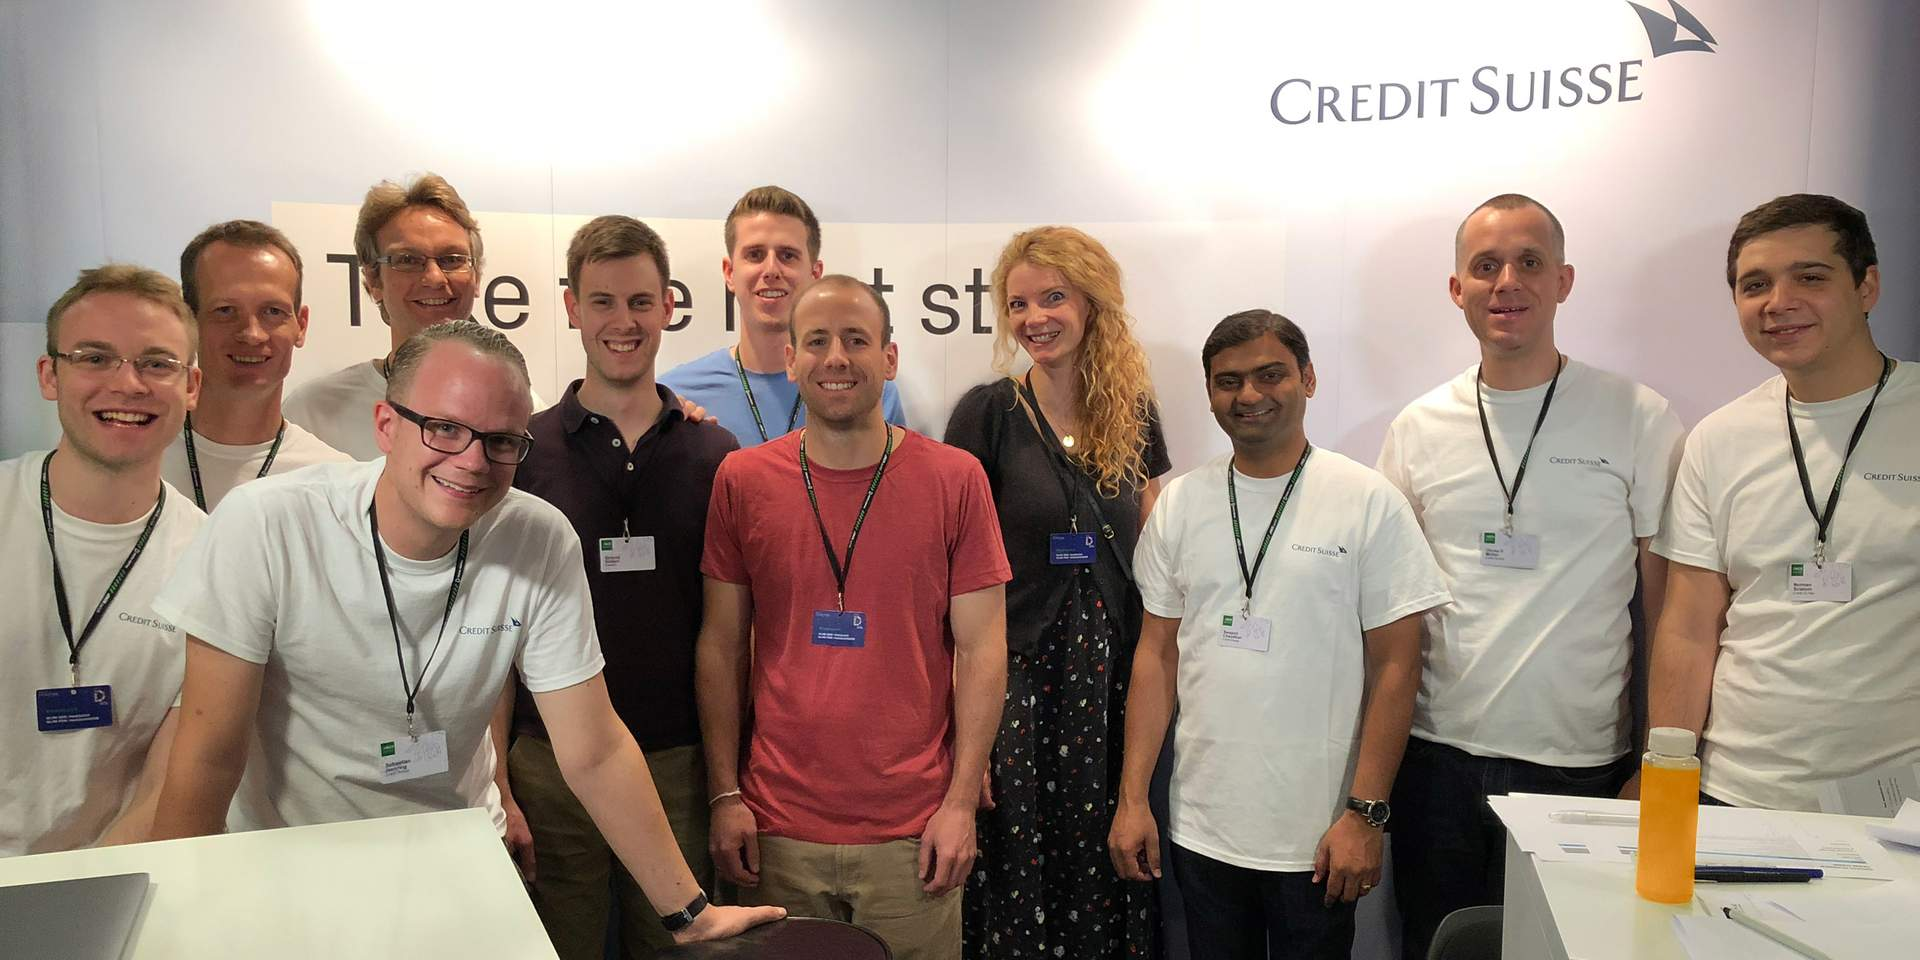 The Credit Suisse team with the team that won their challenge